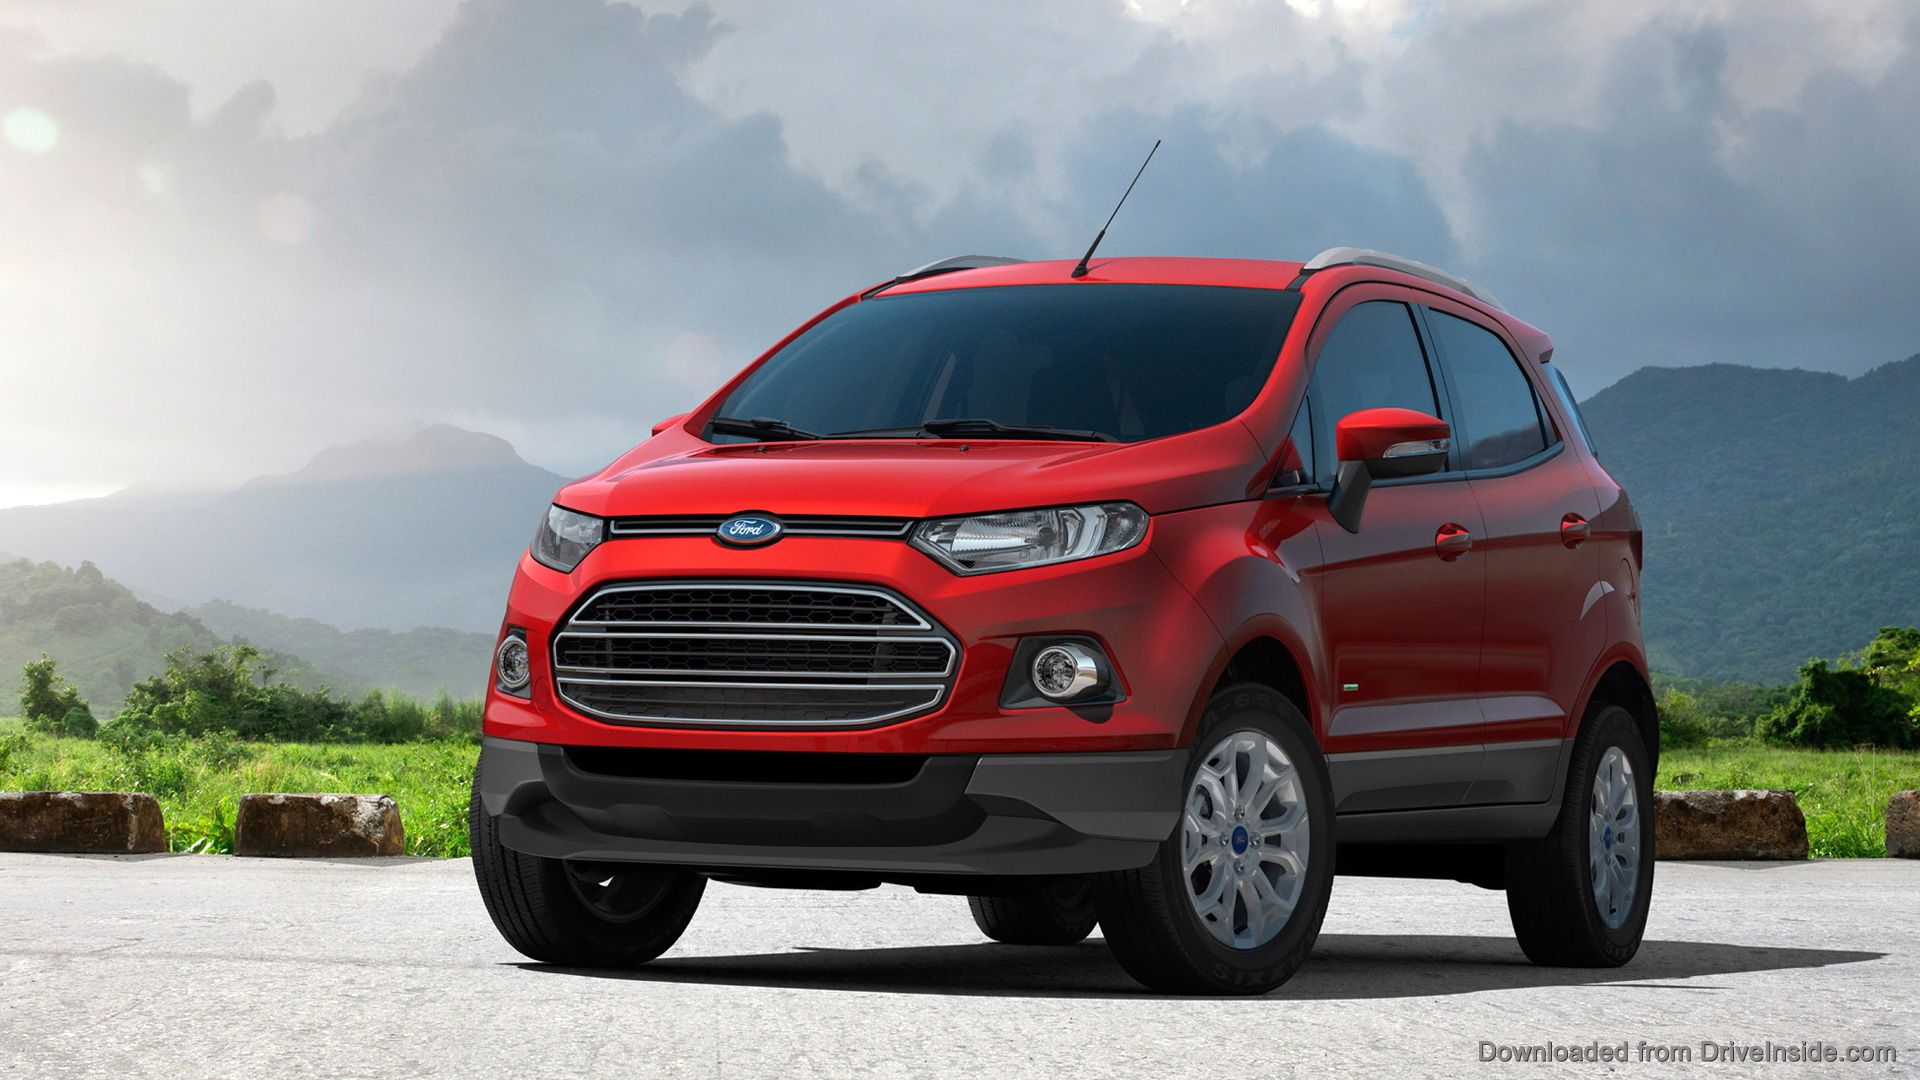 ford ecosport wallpaper - http://wallpaperzoo/ford-ecosport